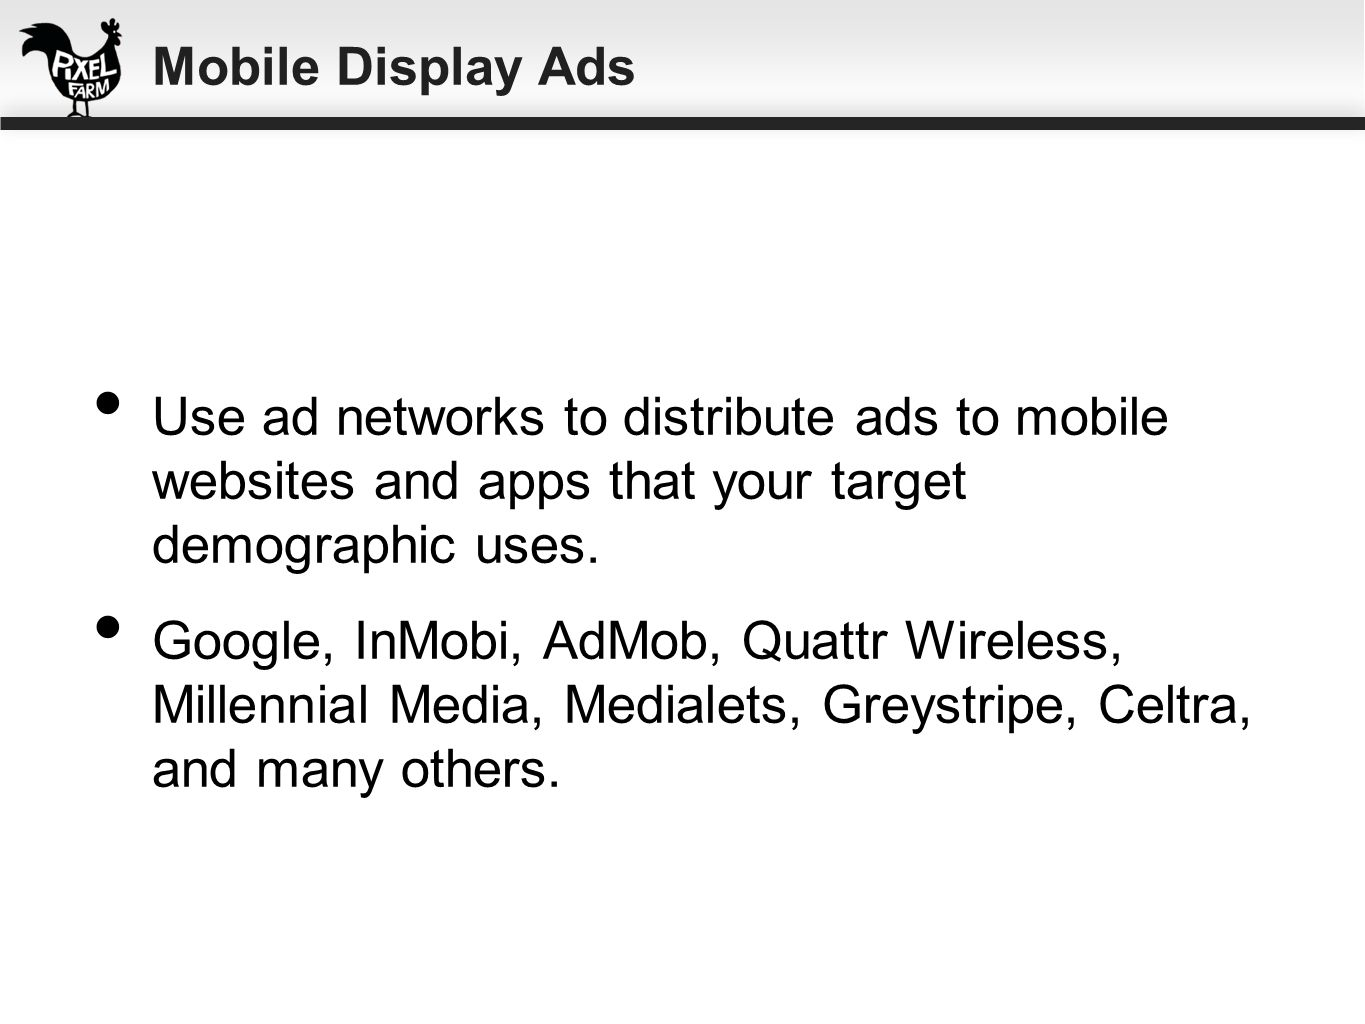 Use ad networks to distribute ads to mobile websites and apps that your target demographic uses. Google, InMobi, AdMob, Quattr Wireless, Millennial Me